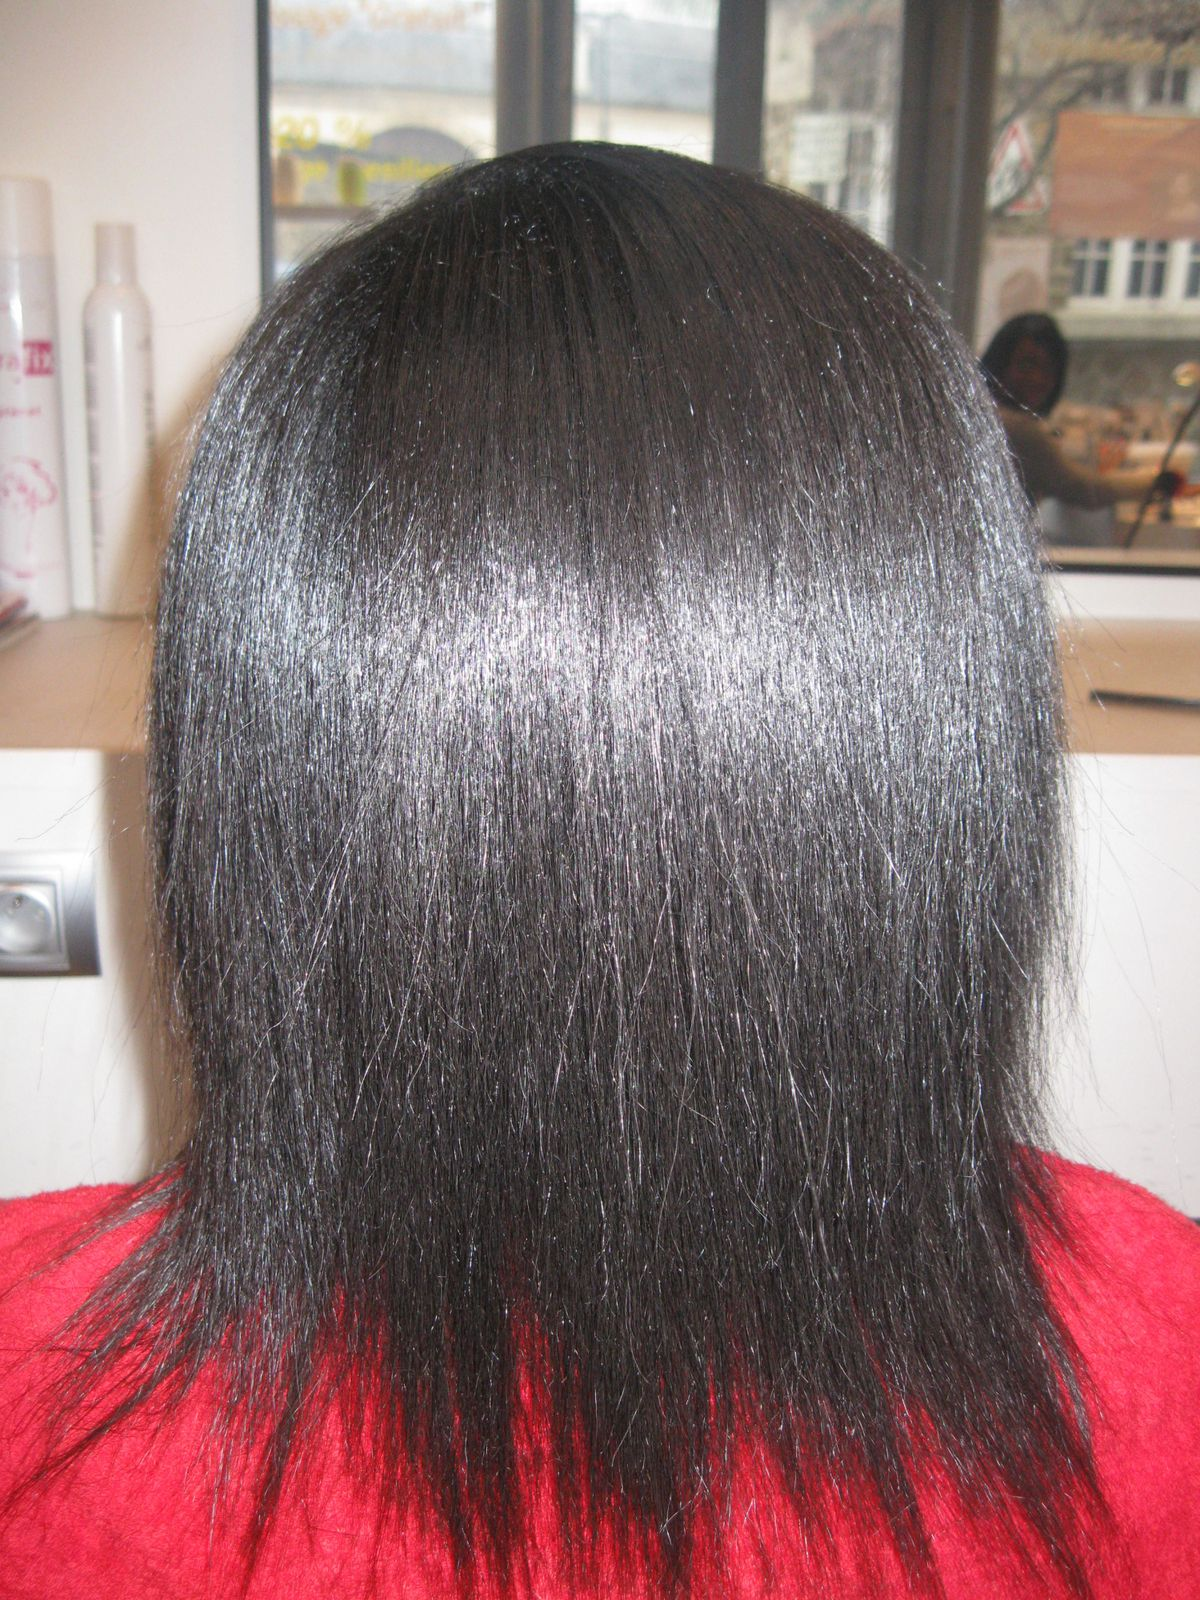 Album lissage sur cheveux de type afro lissage for Lissage bresilien cheveux crepus salon